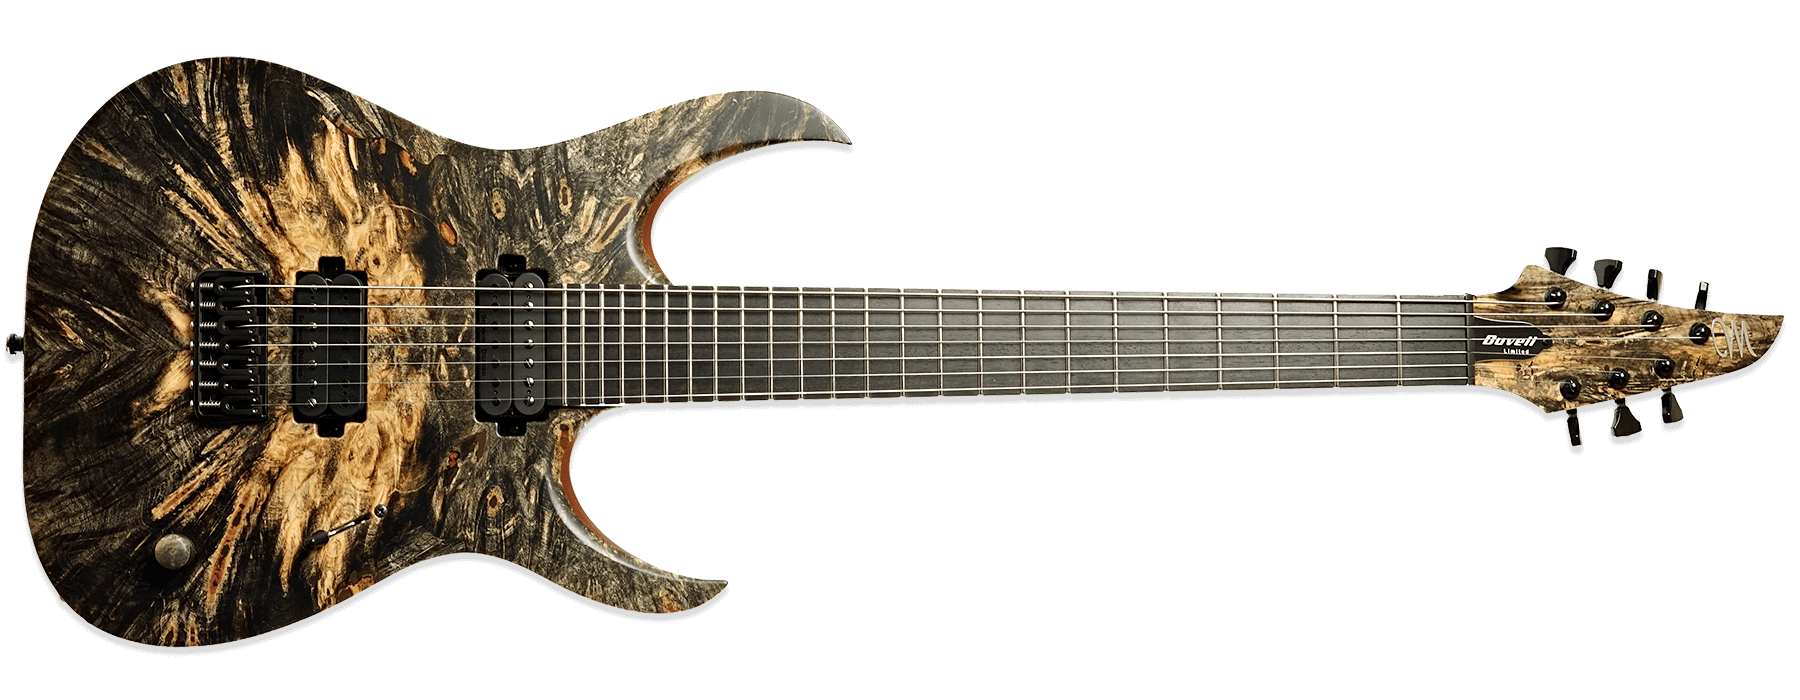 Mayones Duvell Elite 7 Buckeye Burl Trans Natural Satine